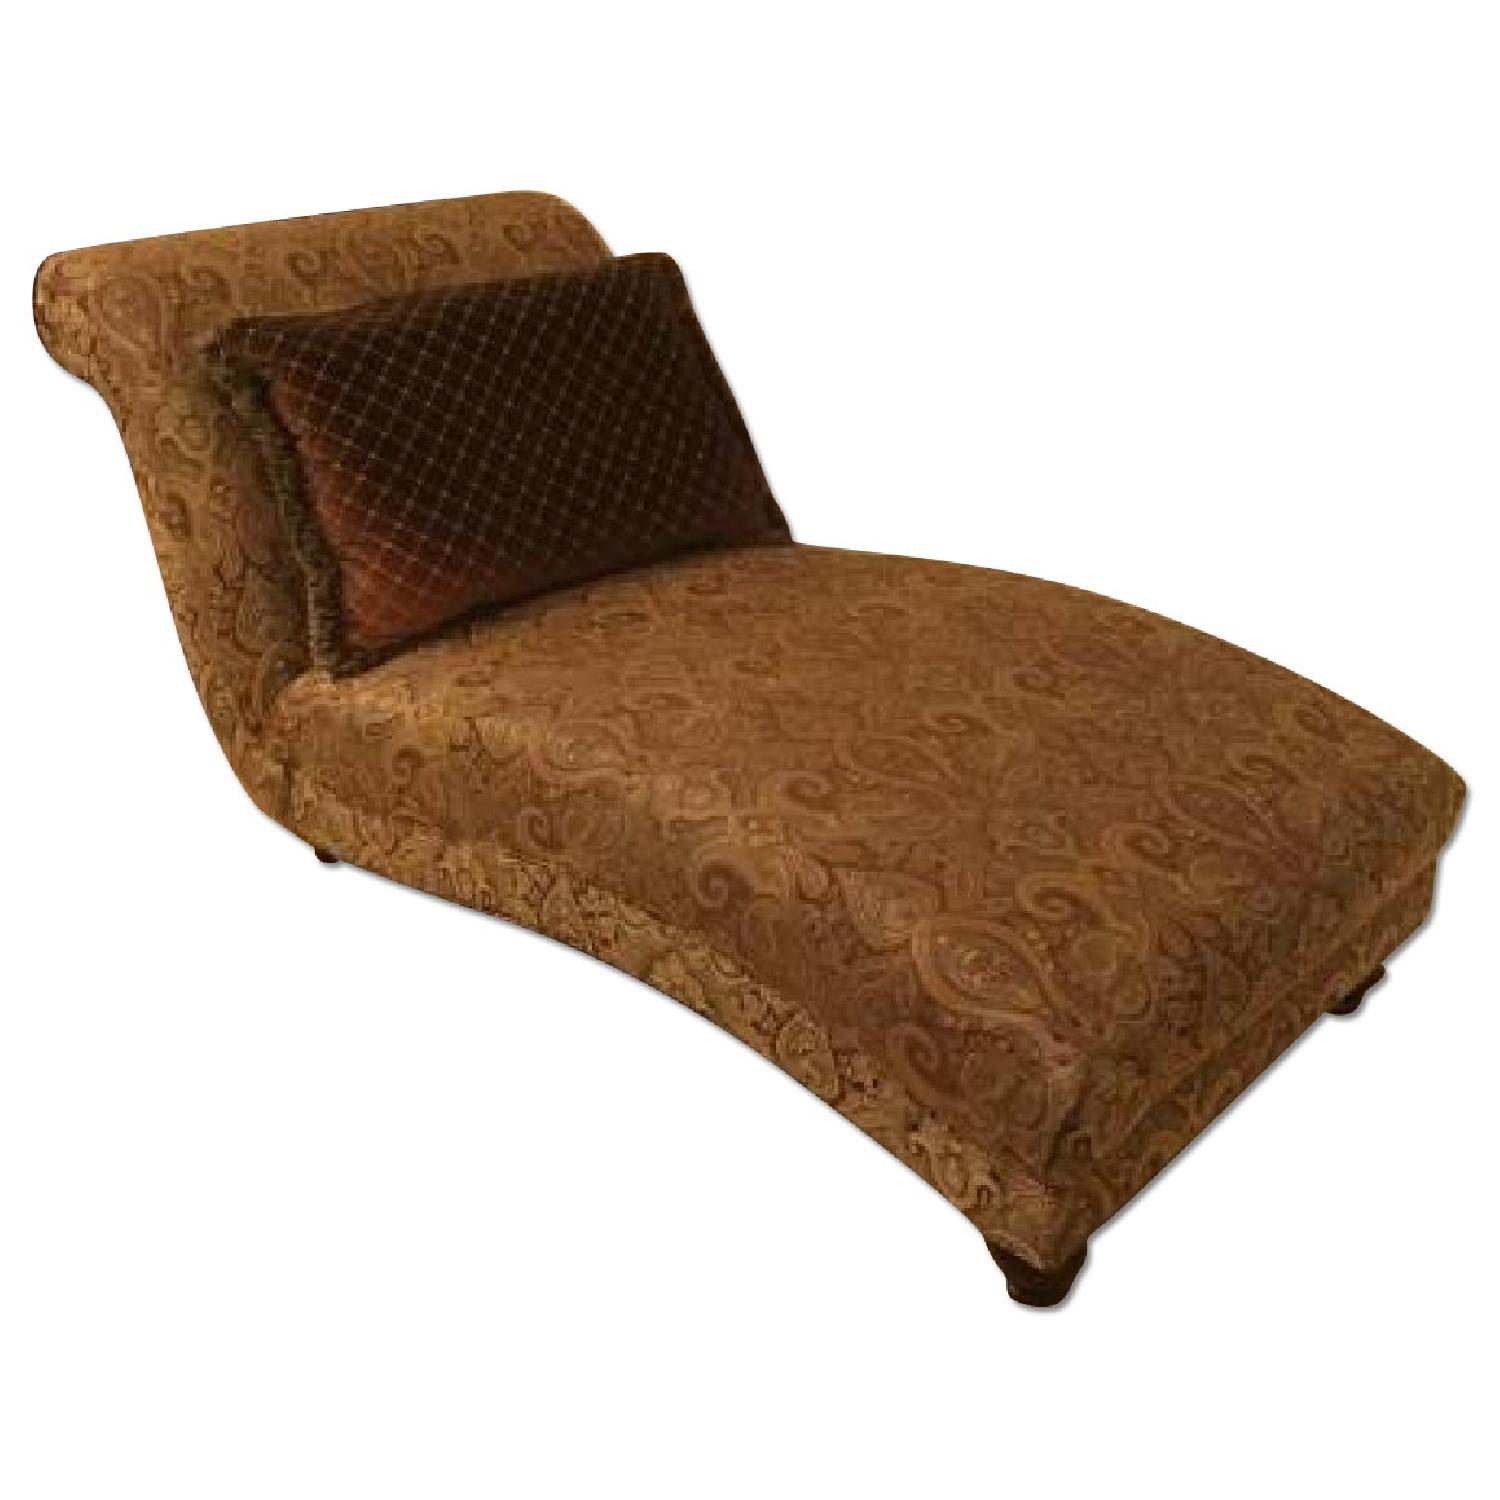 raymour flanigan cindy crawford home chaise lounge